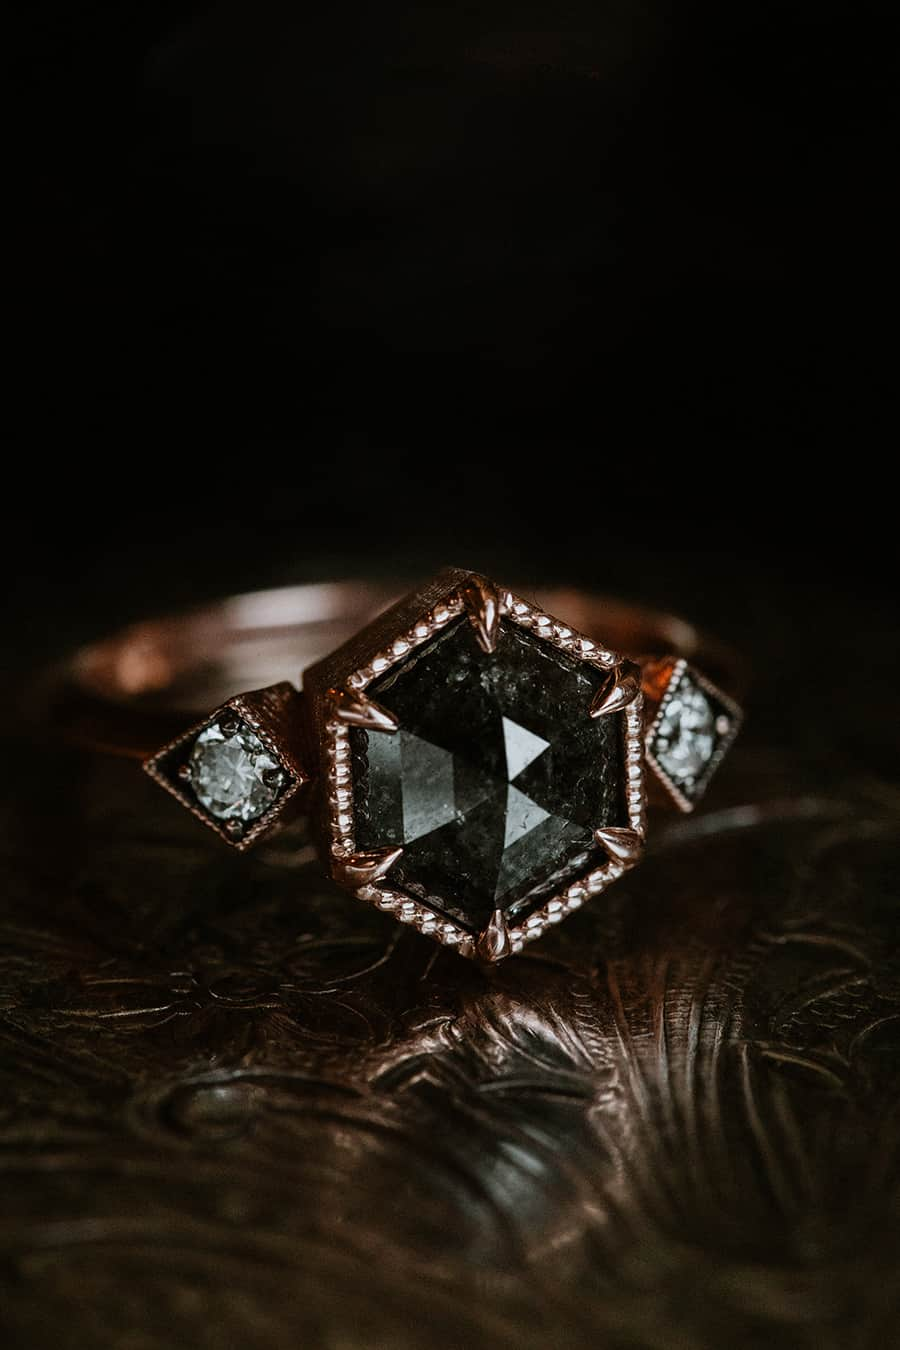 10 Incredibly Beautiful Wedding Ring Photos For Your Wedding